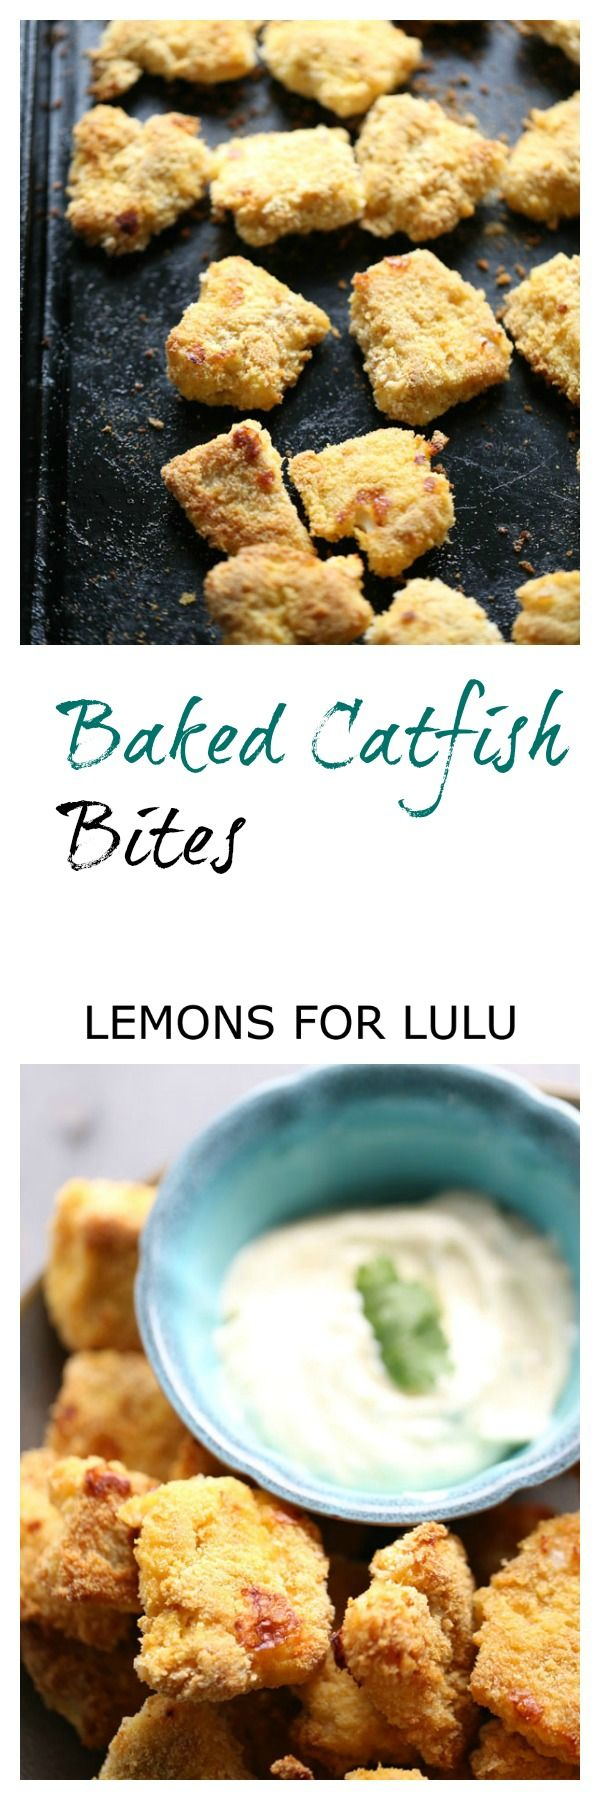 Baked catfish is dredged in a perfectly seasoned coating and then served with a simpel remoulade sauce. lemonsforlulu.com